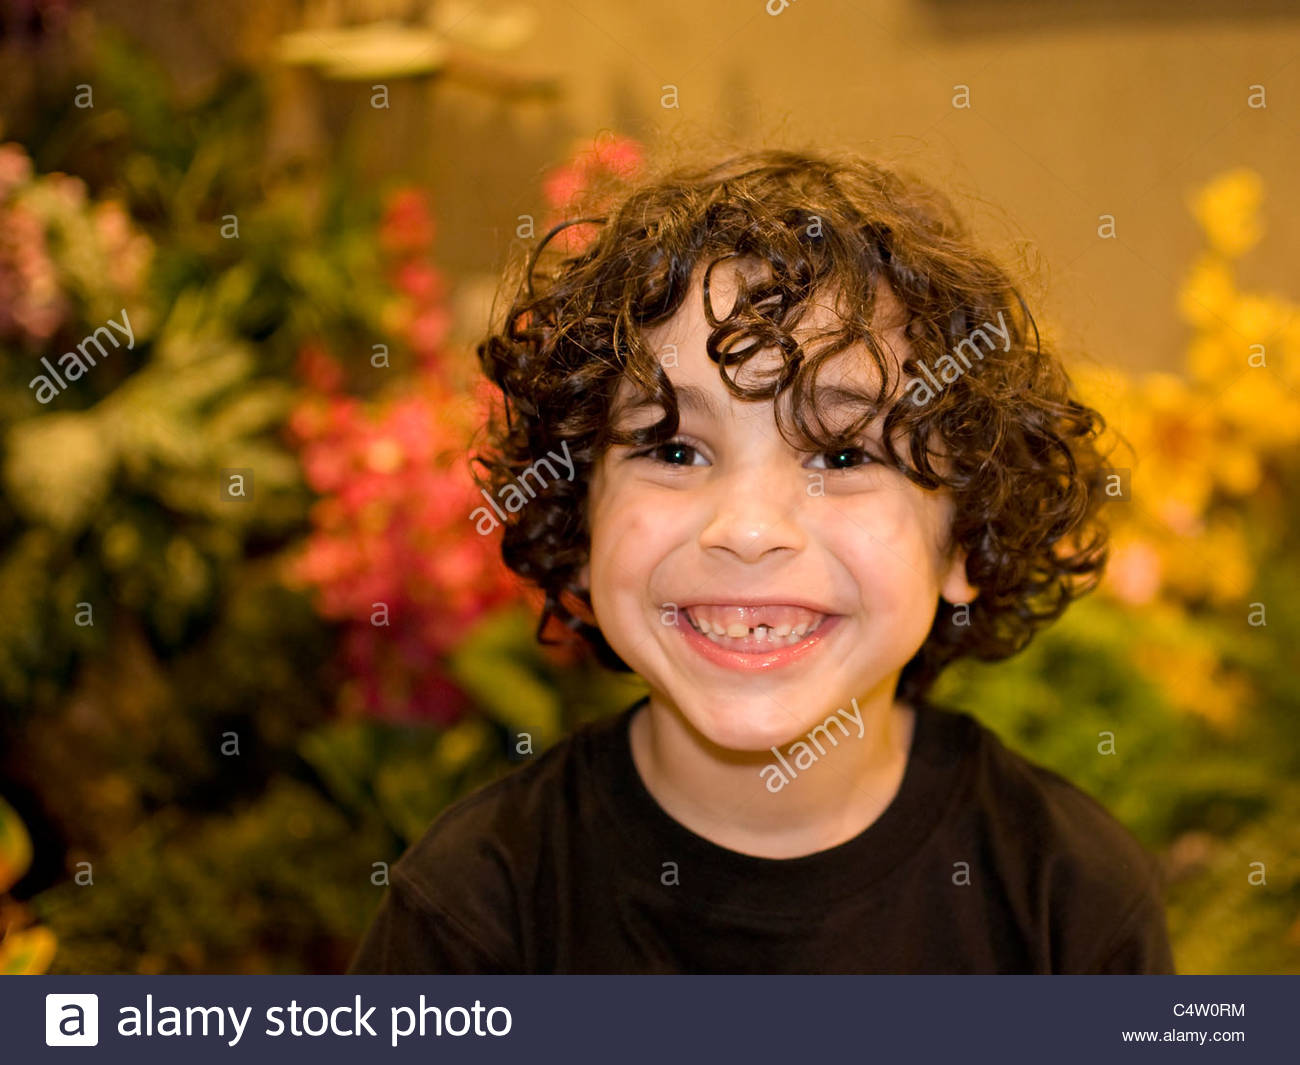 Hispanic Boy With Curly Hair Smiling Cute Face Latin Boy S Stock